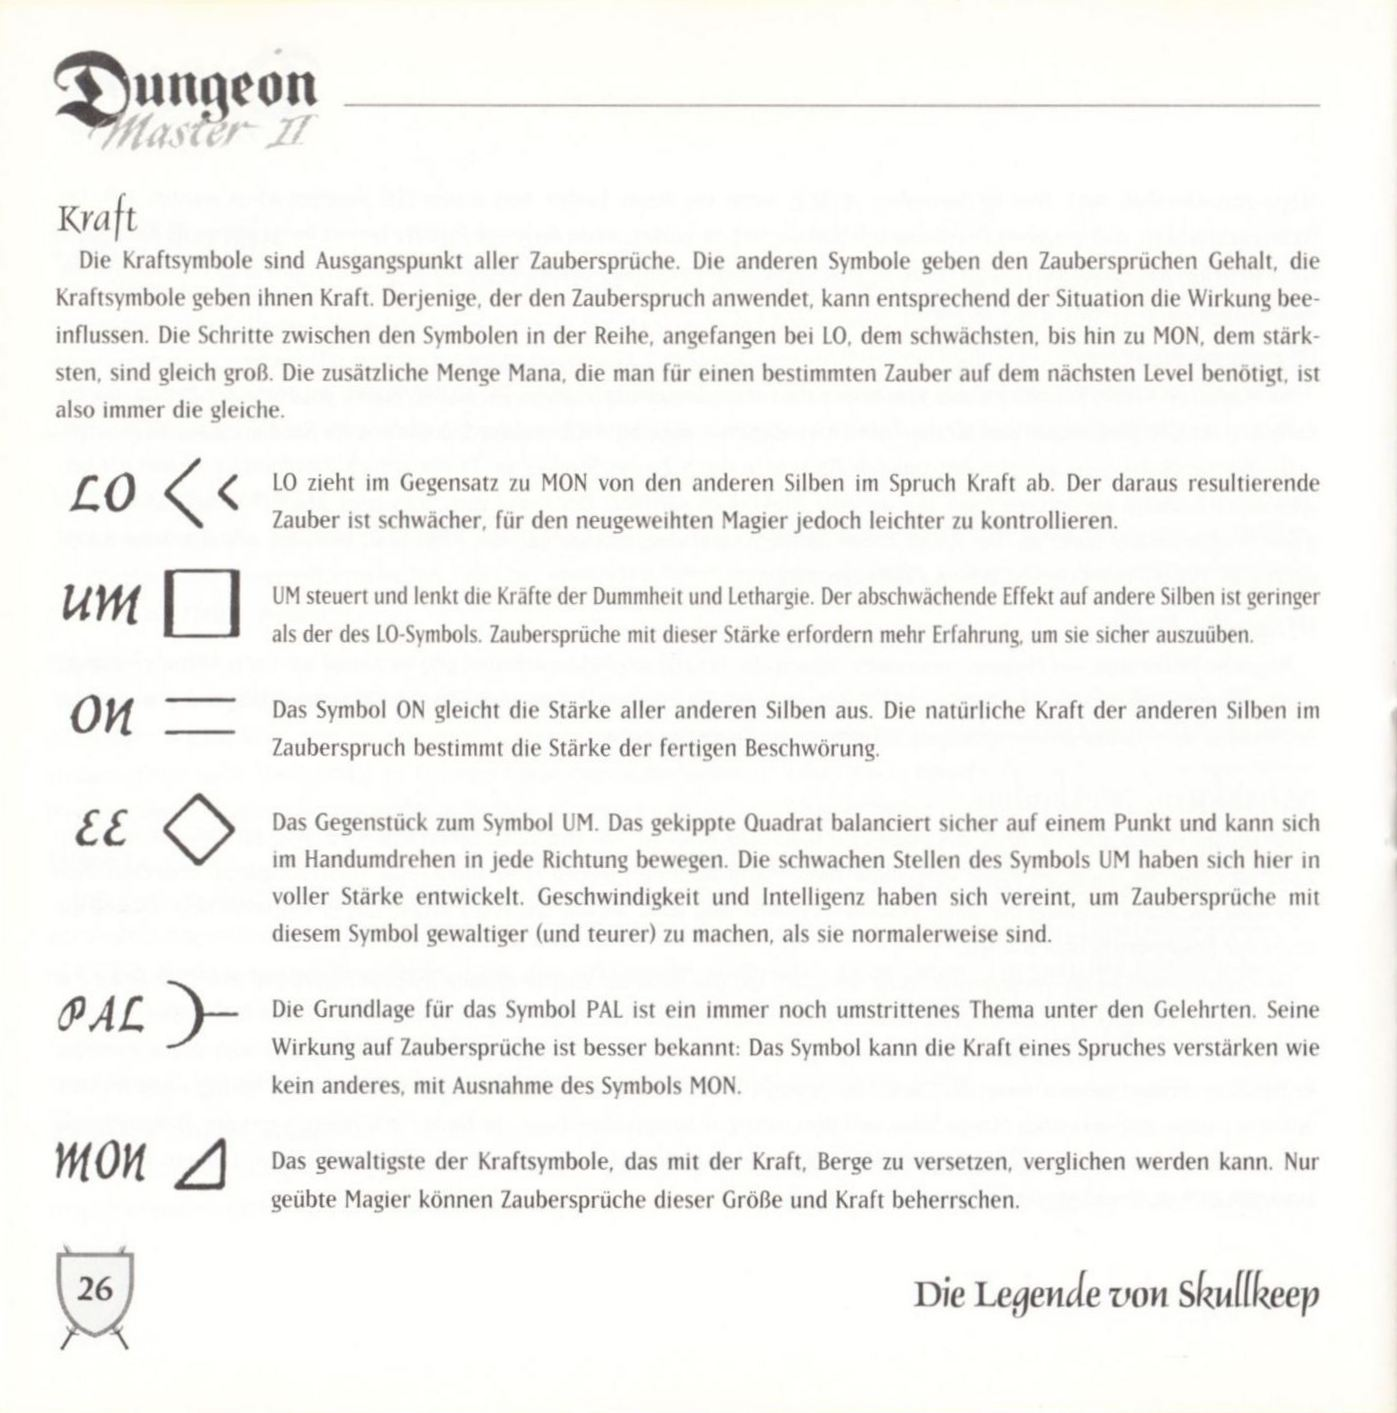 Game - Dungeon Master II - DE - PC - Blackmarket With Booklet - Booklet - Page 028 - Scan